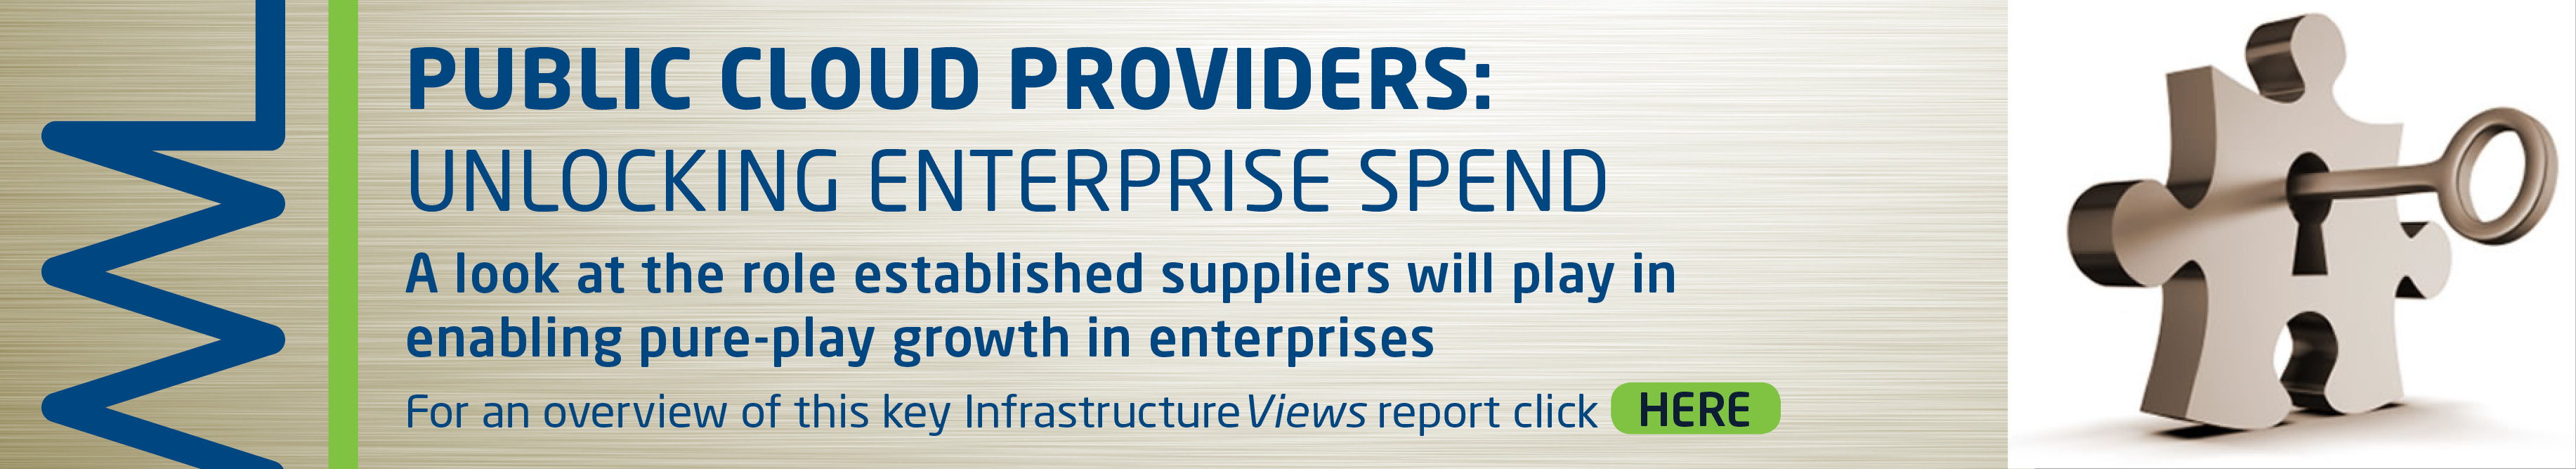 InfrastructureViews report on Public Cloud Providers